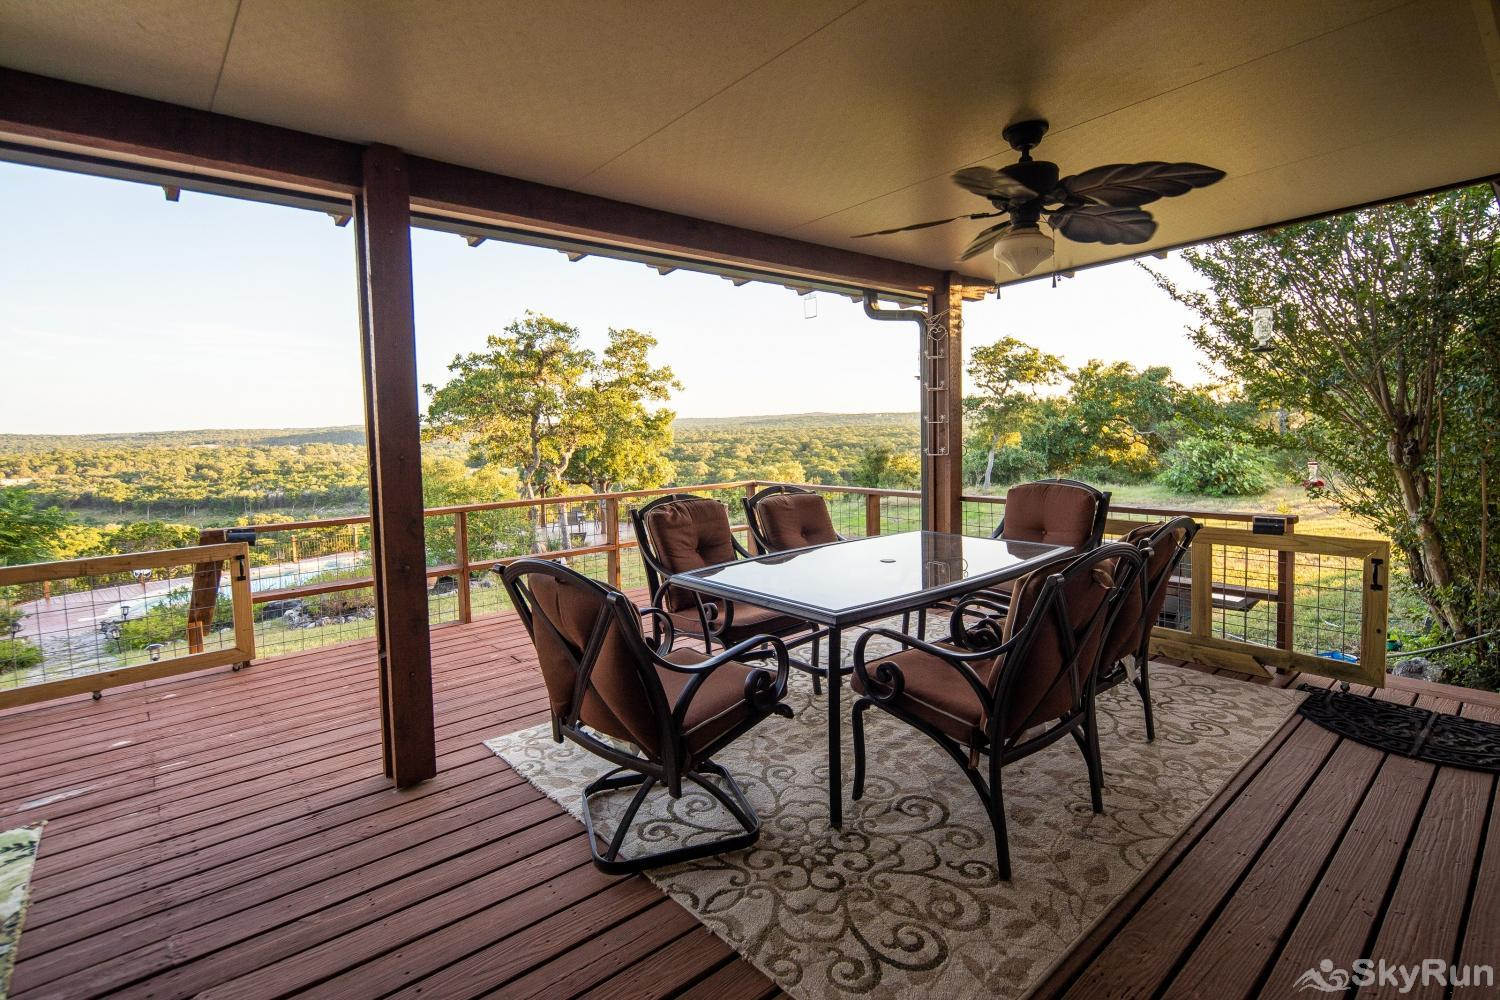 VALLEY VIEW Outdoor dining area with gas grill